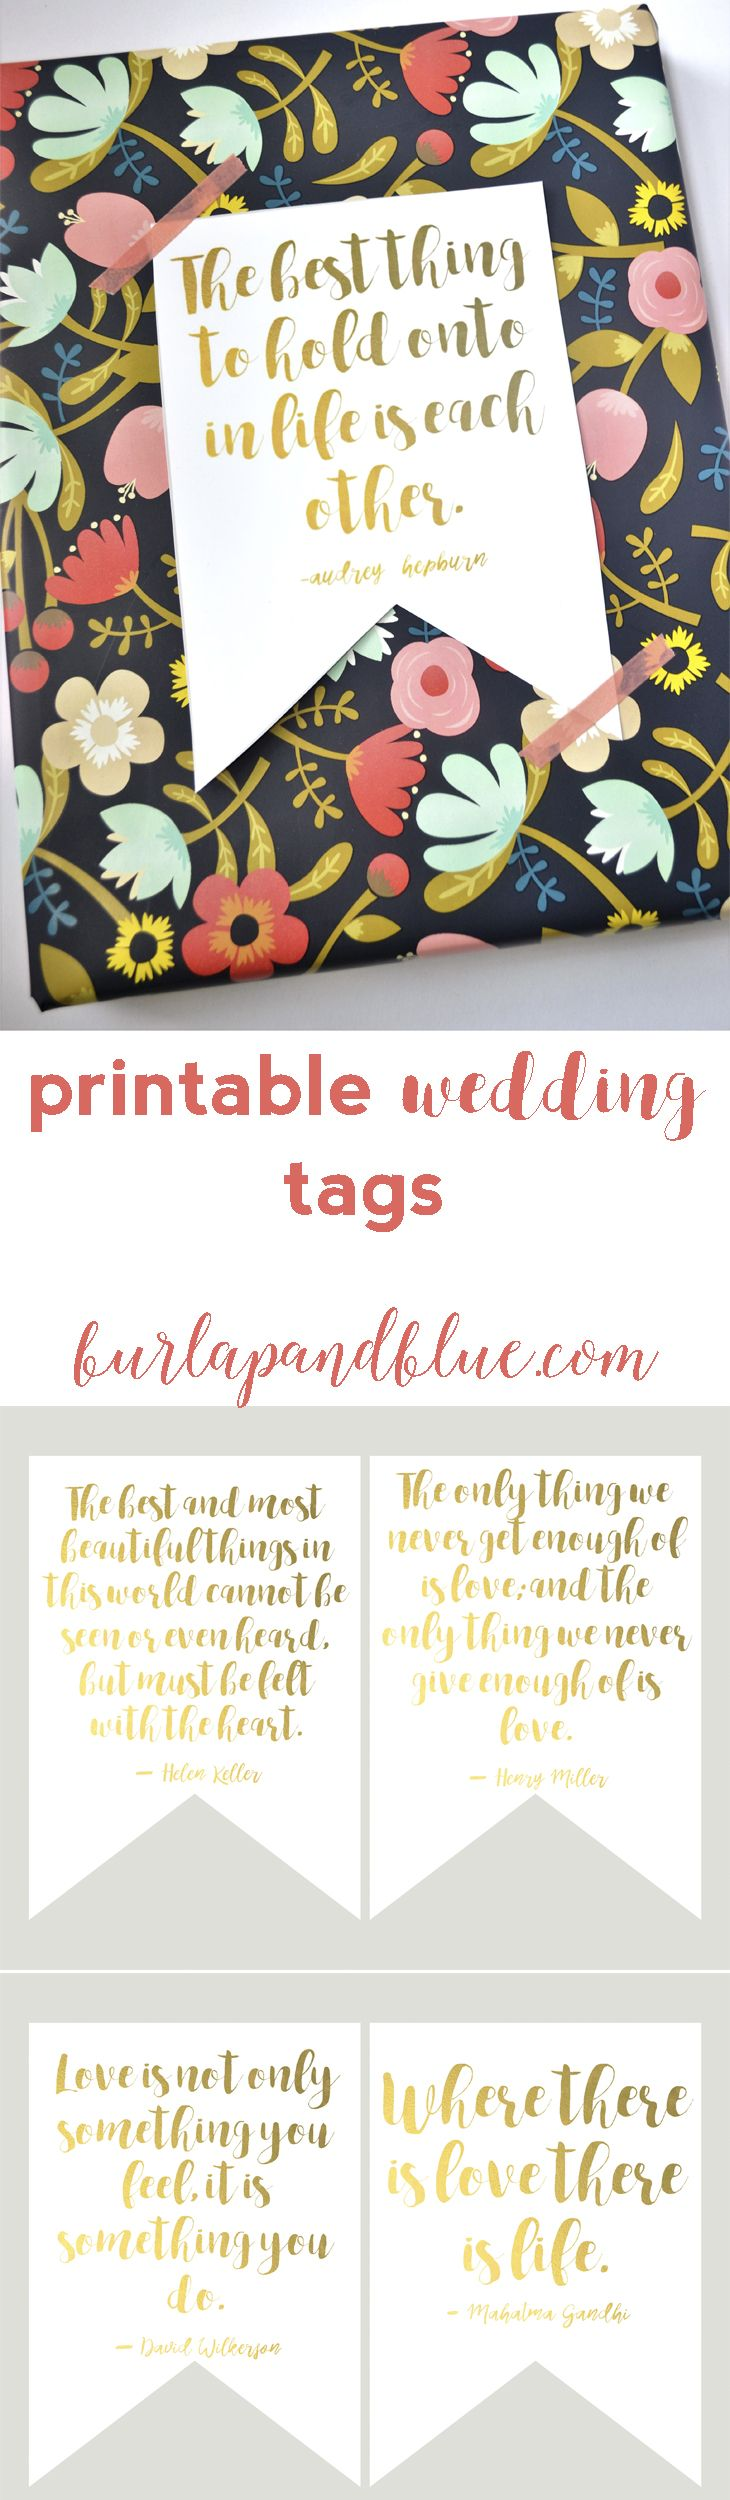 Best 25 free printable wedding ideas on pinterest printable free printable wedding tags six designs perfect for gift toppers or favor tags junglespirit Choice Image